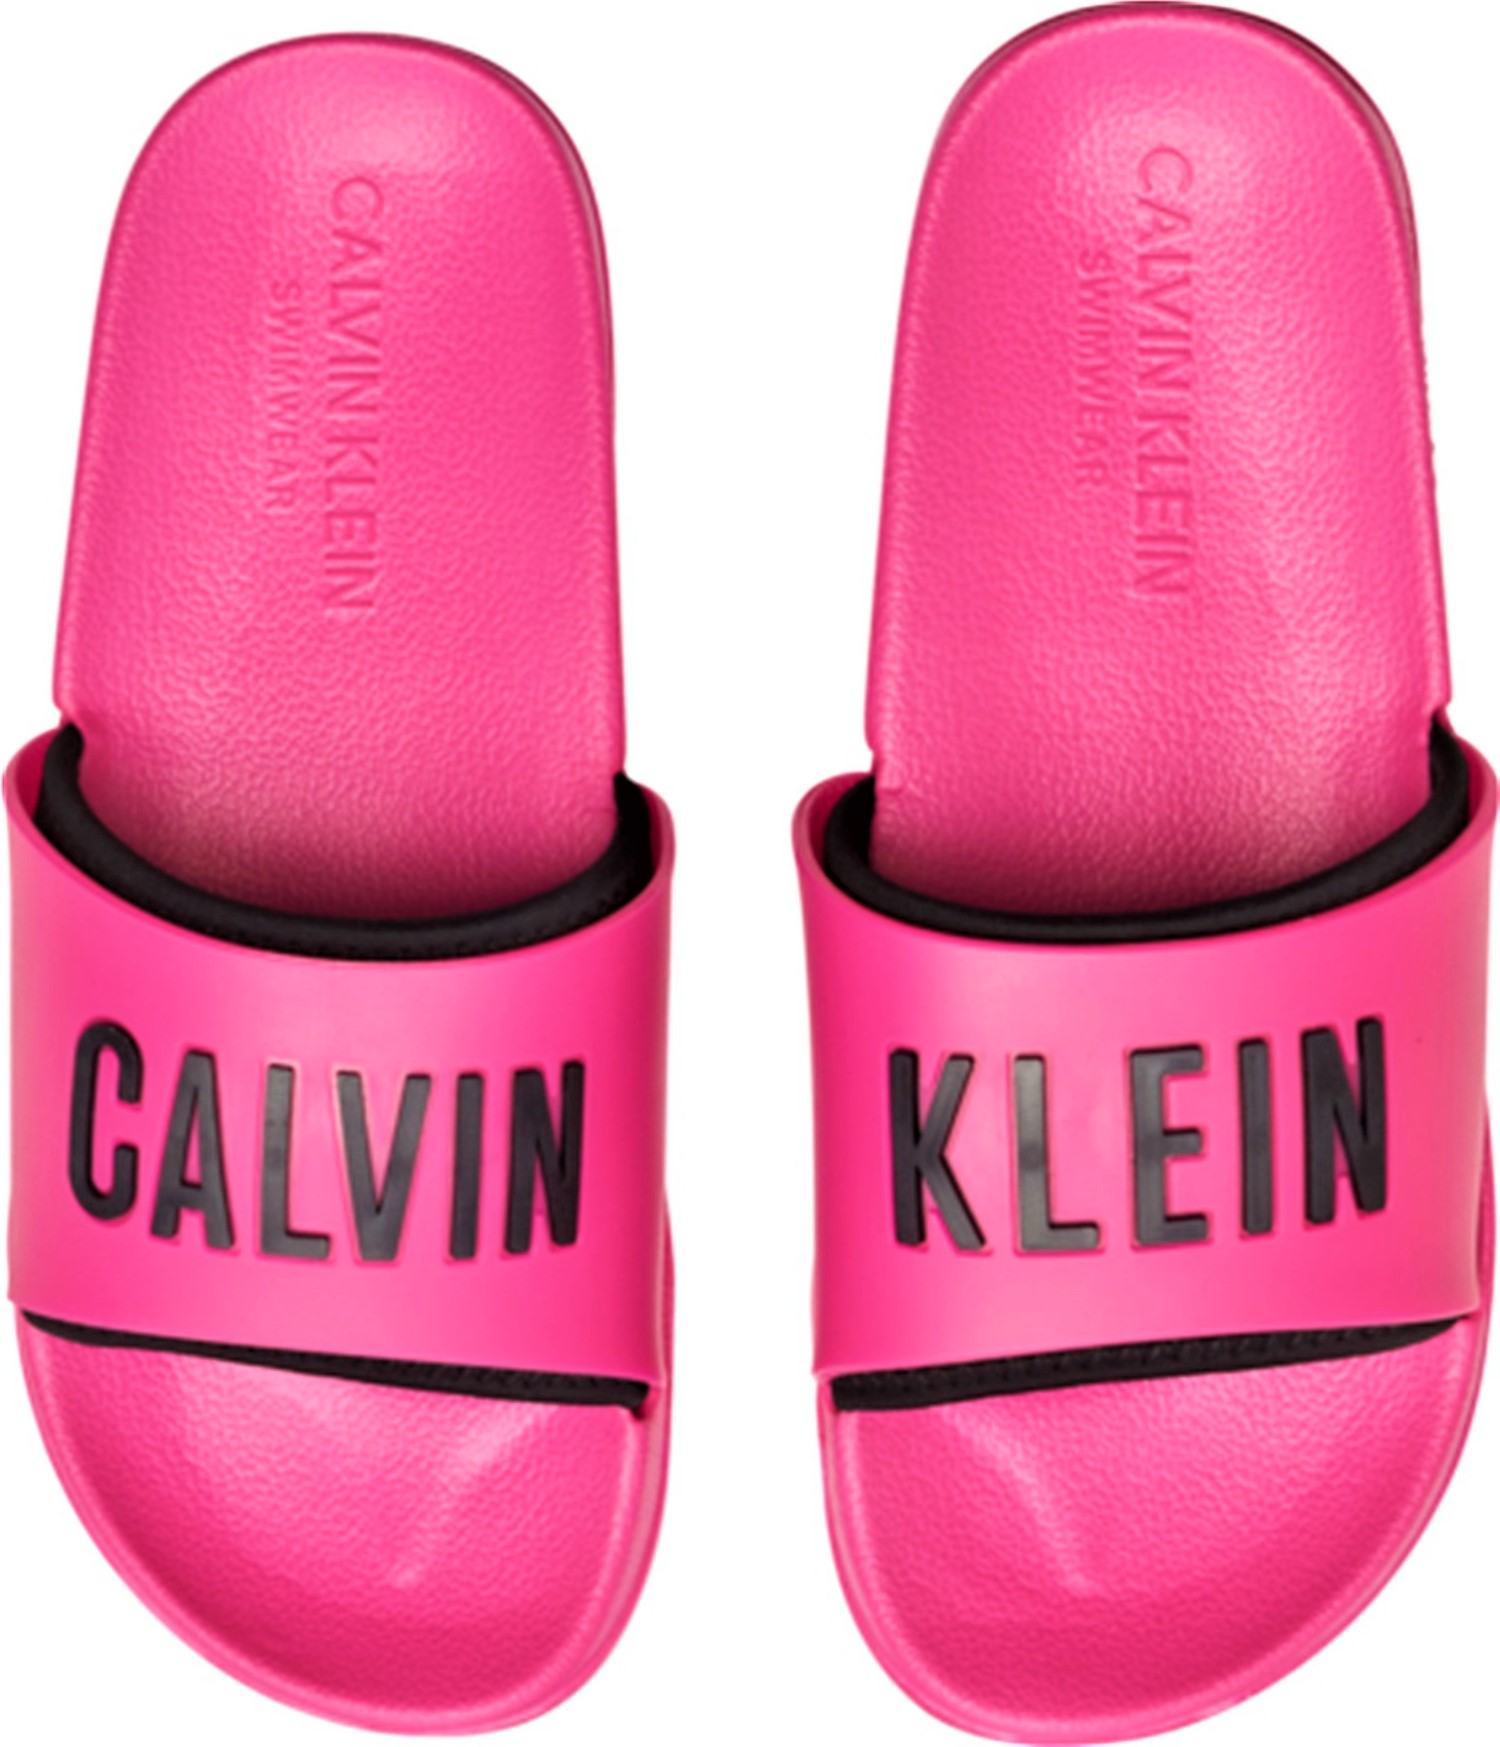 Calvin Klein růžové pantofle Slide Intense Power